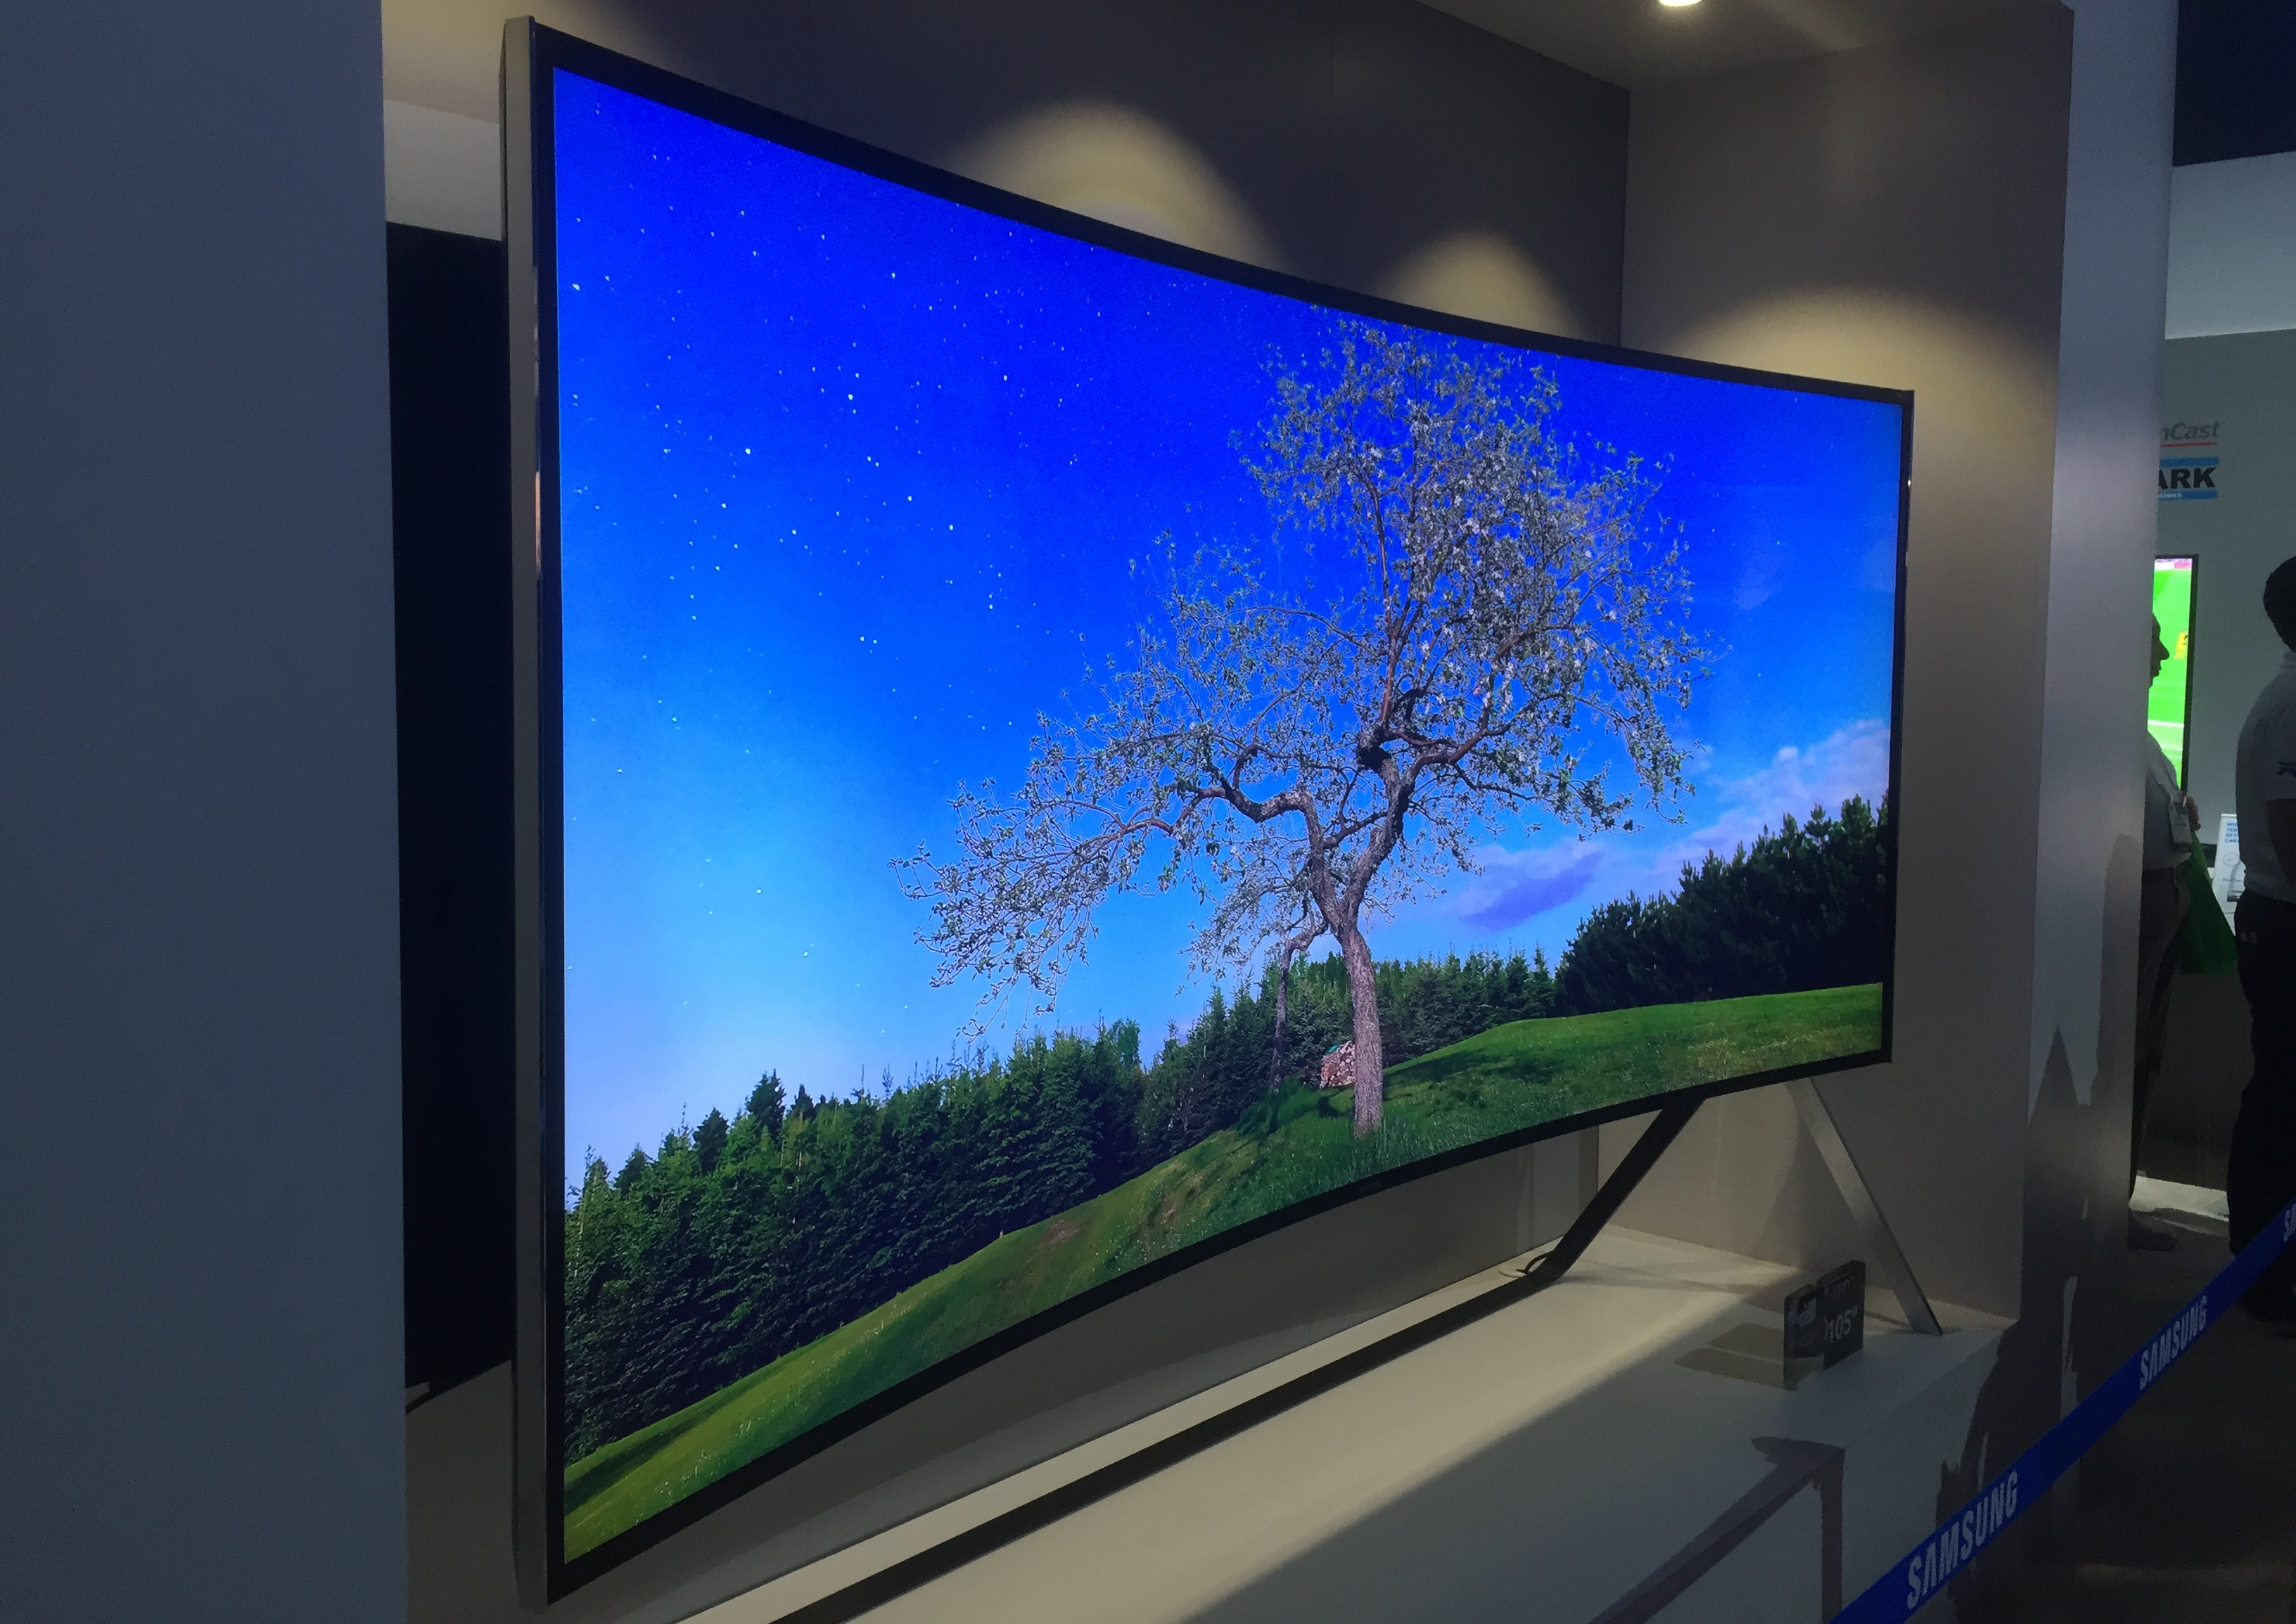 Samsung 105 inch curved LED TV on display at CES2015.